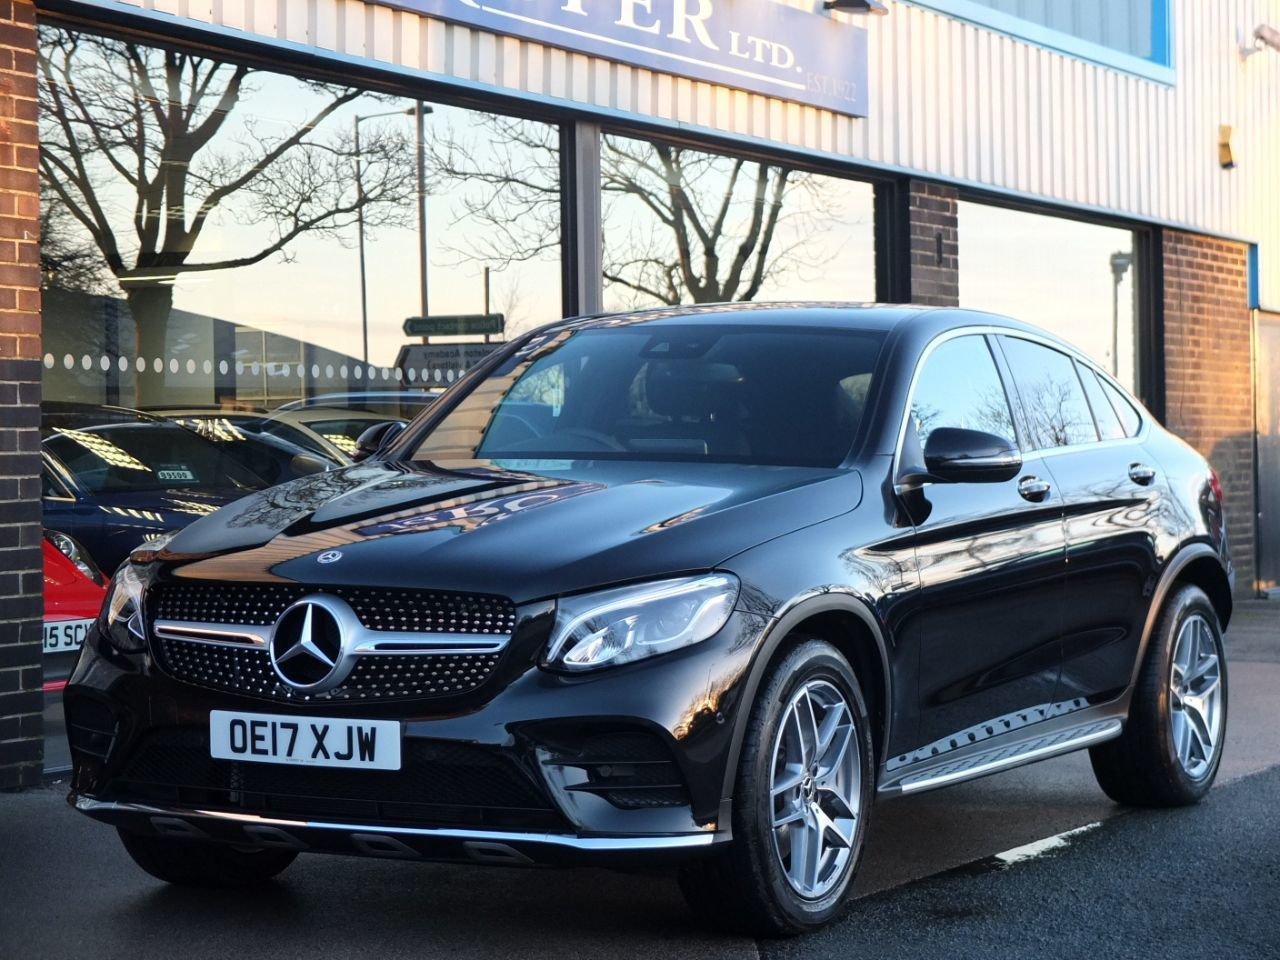 Mercedes-Benz Glc-coupe 3.0 350d 4Matic AMG Line Premium Plus 9G-Tronic Coupe Diesel Obsidian Black Metallic